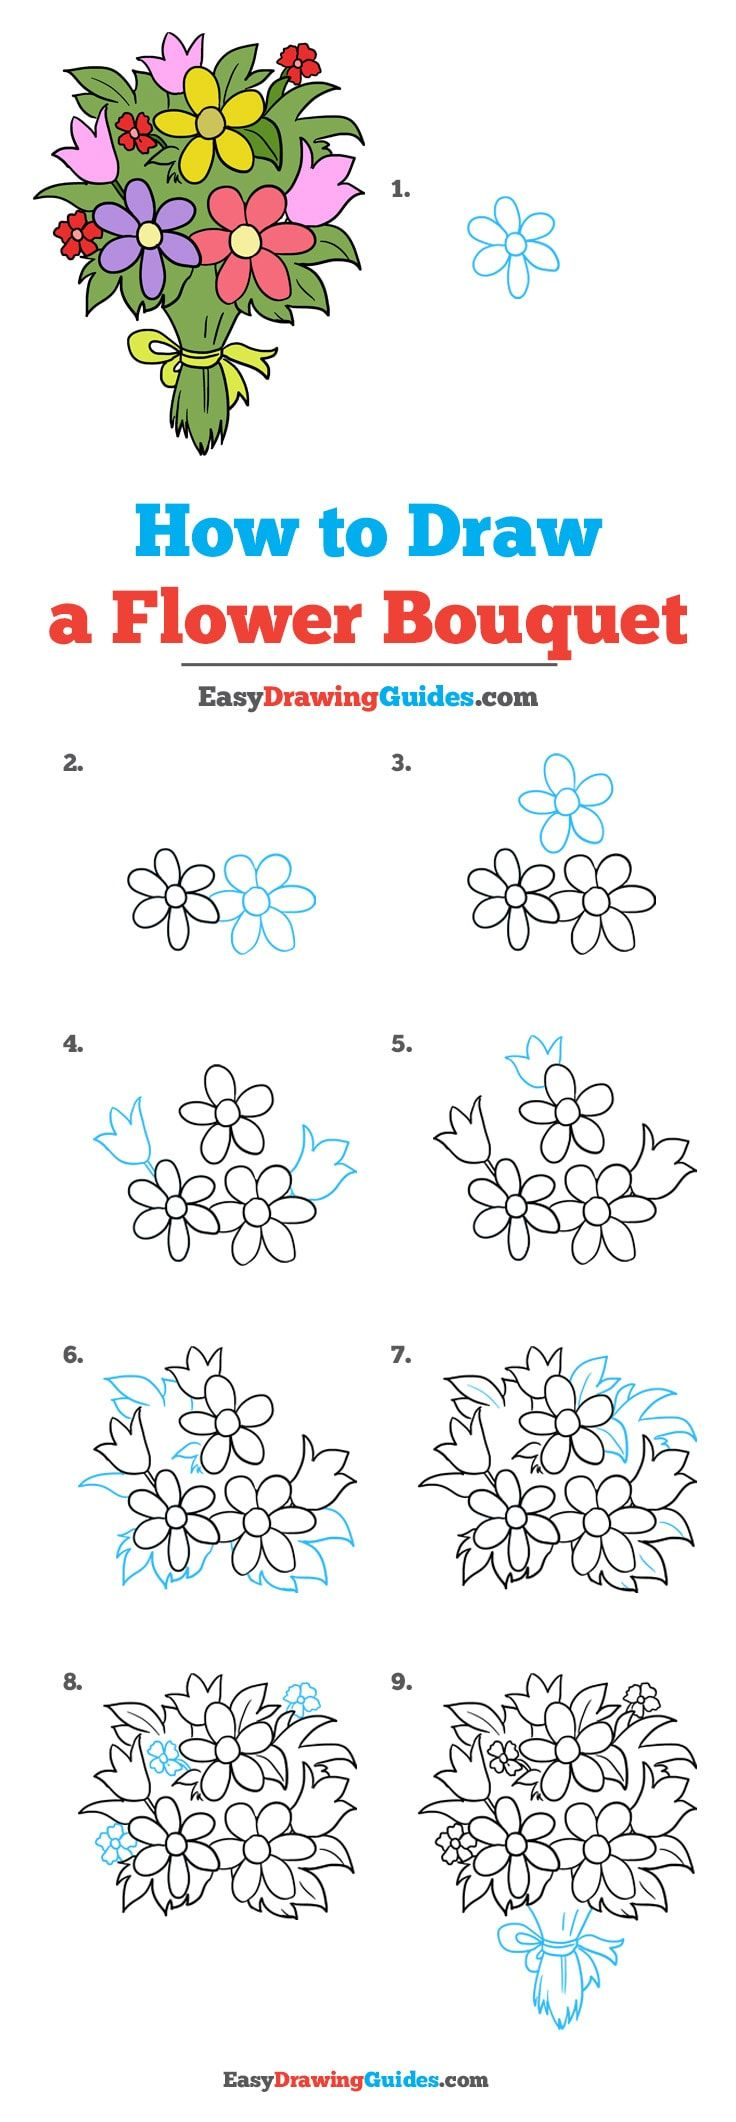 How to Draw a Flower Bouquet   Flower drawing tutorials, Easy ...